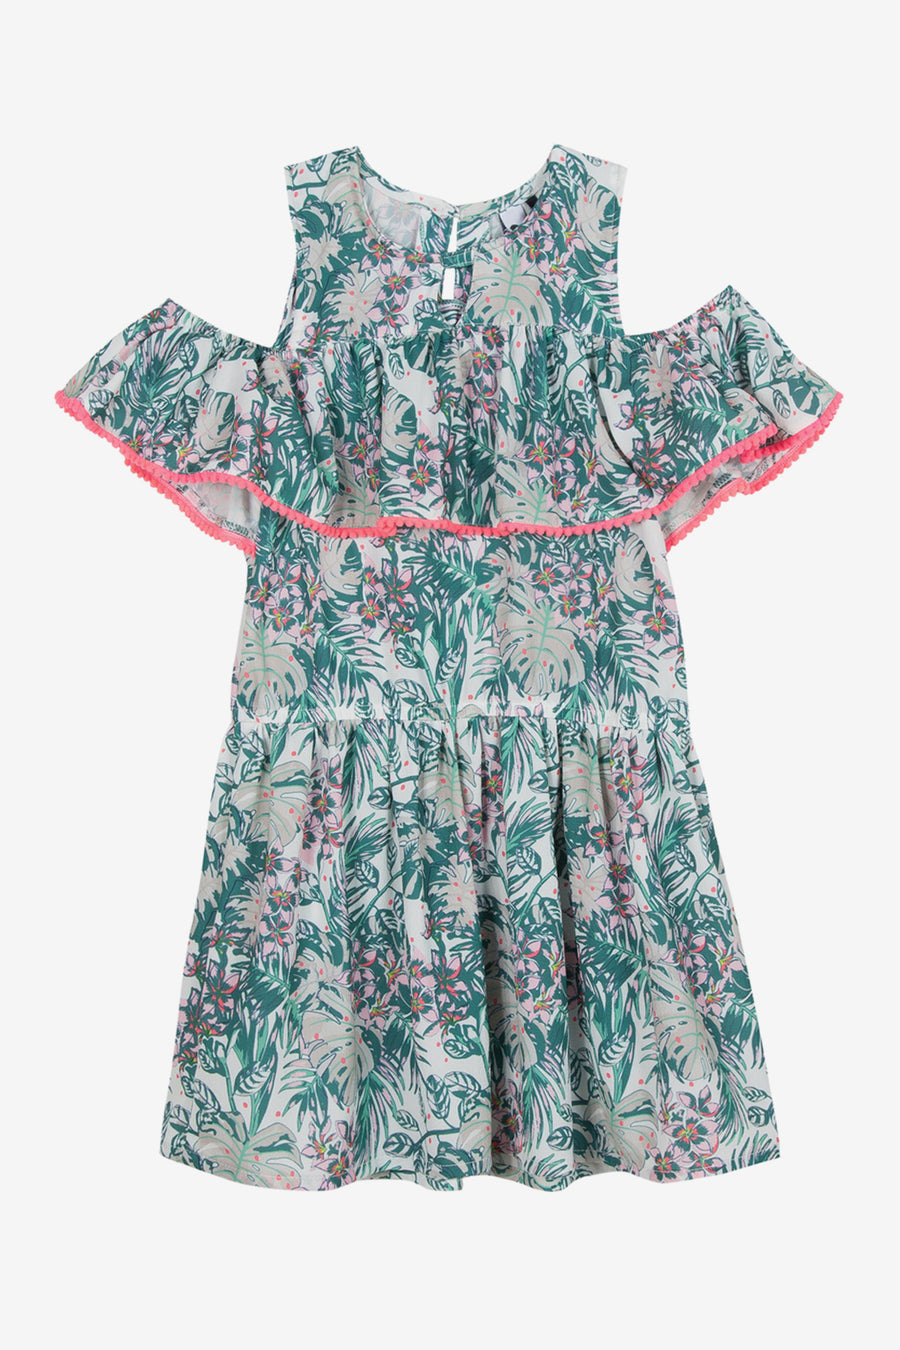 3pommes Palm Springs Dress